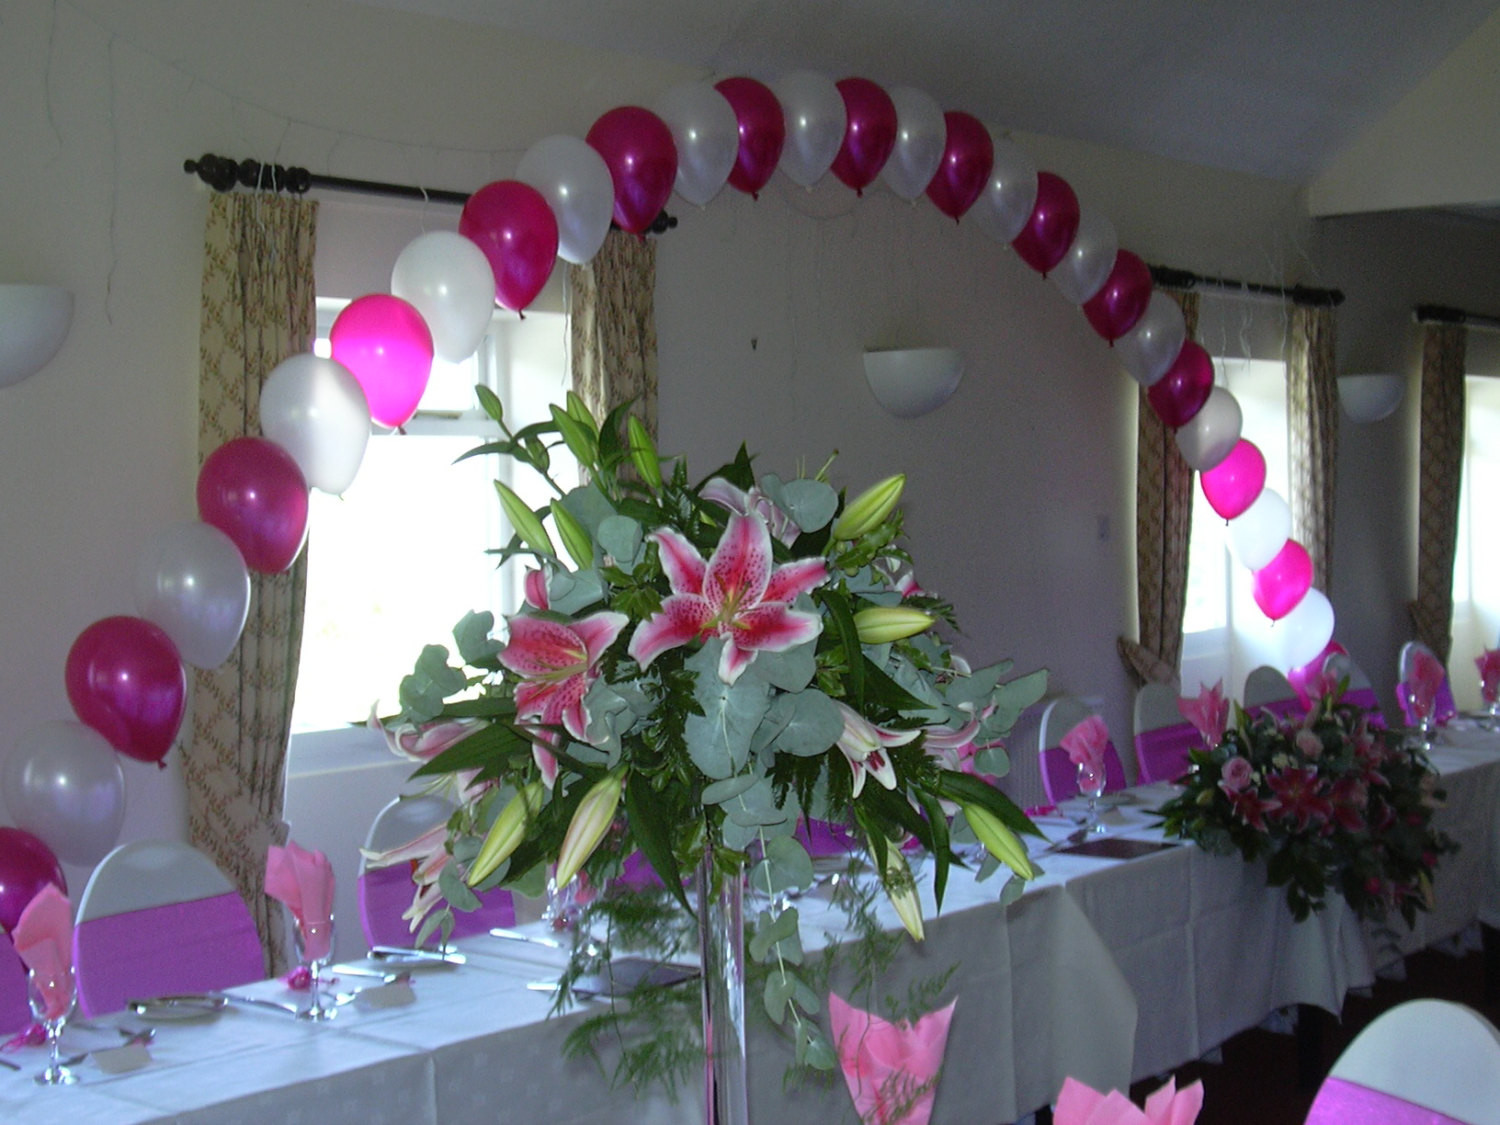 Best ideas about DIY Wedding Arch Kits . Save or Pin DIY Balloon Arch Kit for Wedding or Party Decoration Now.